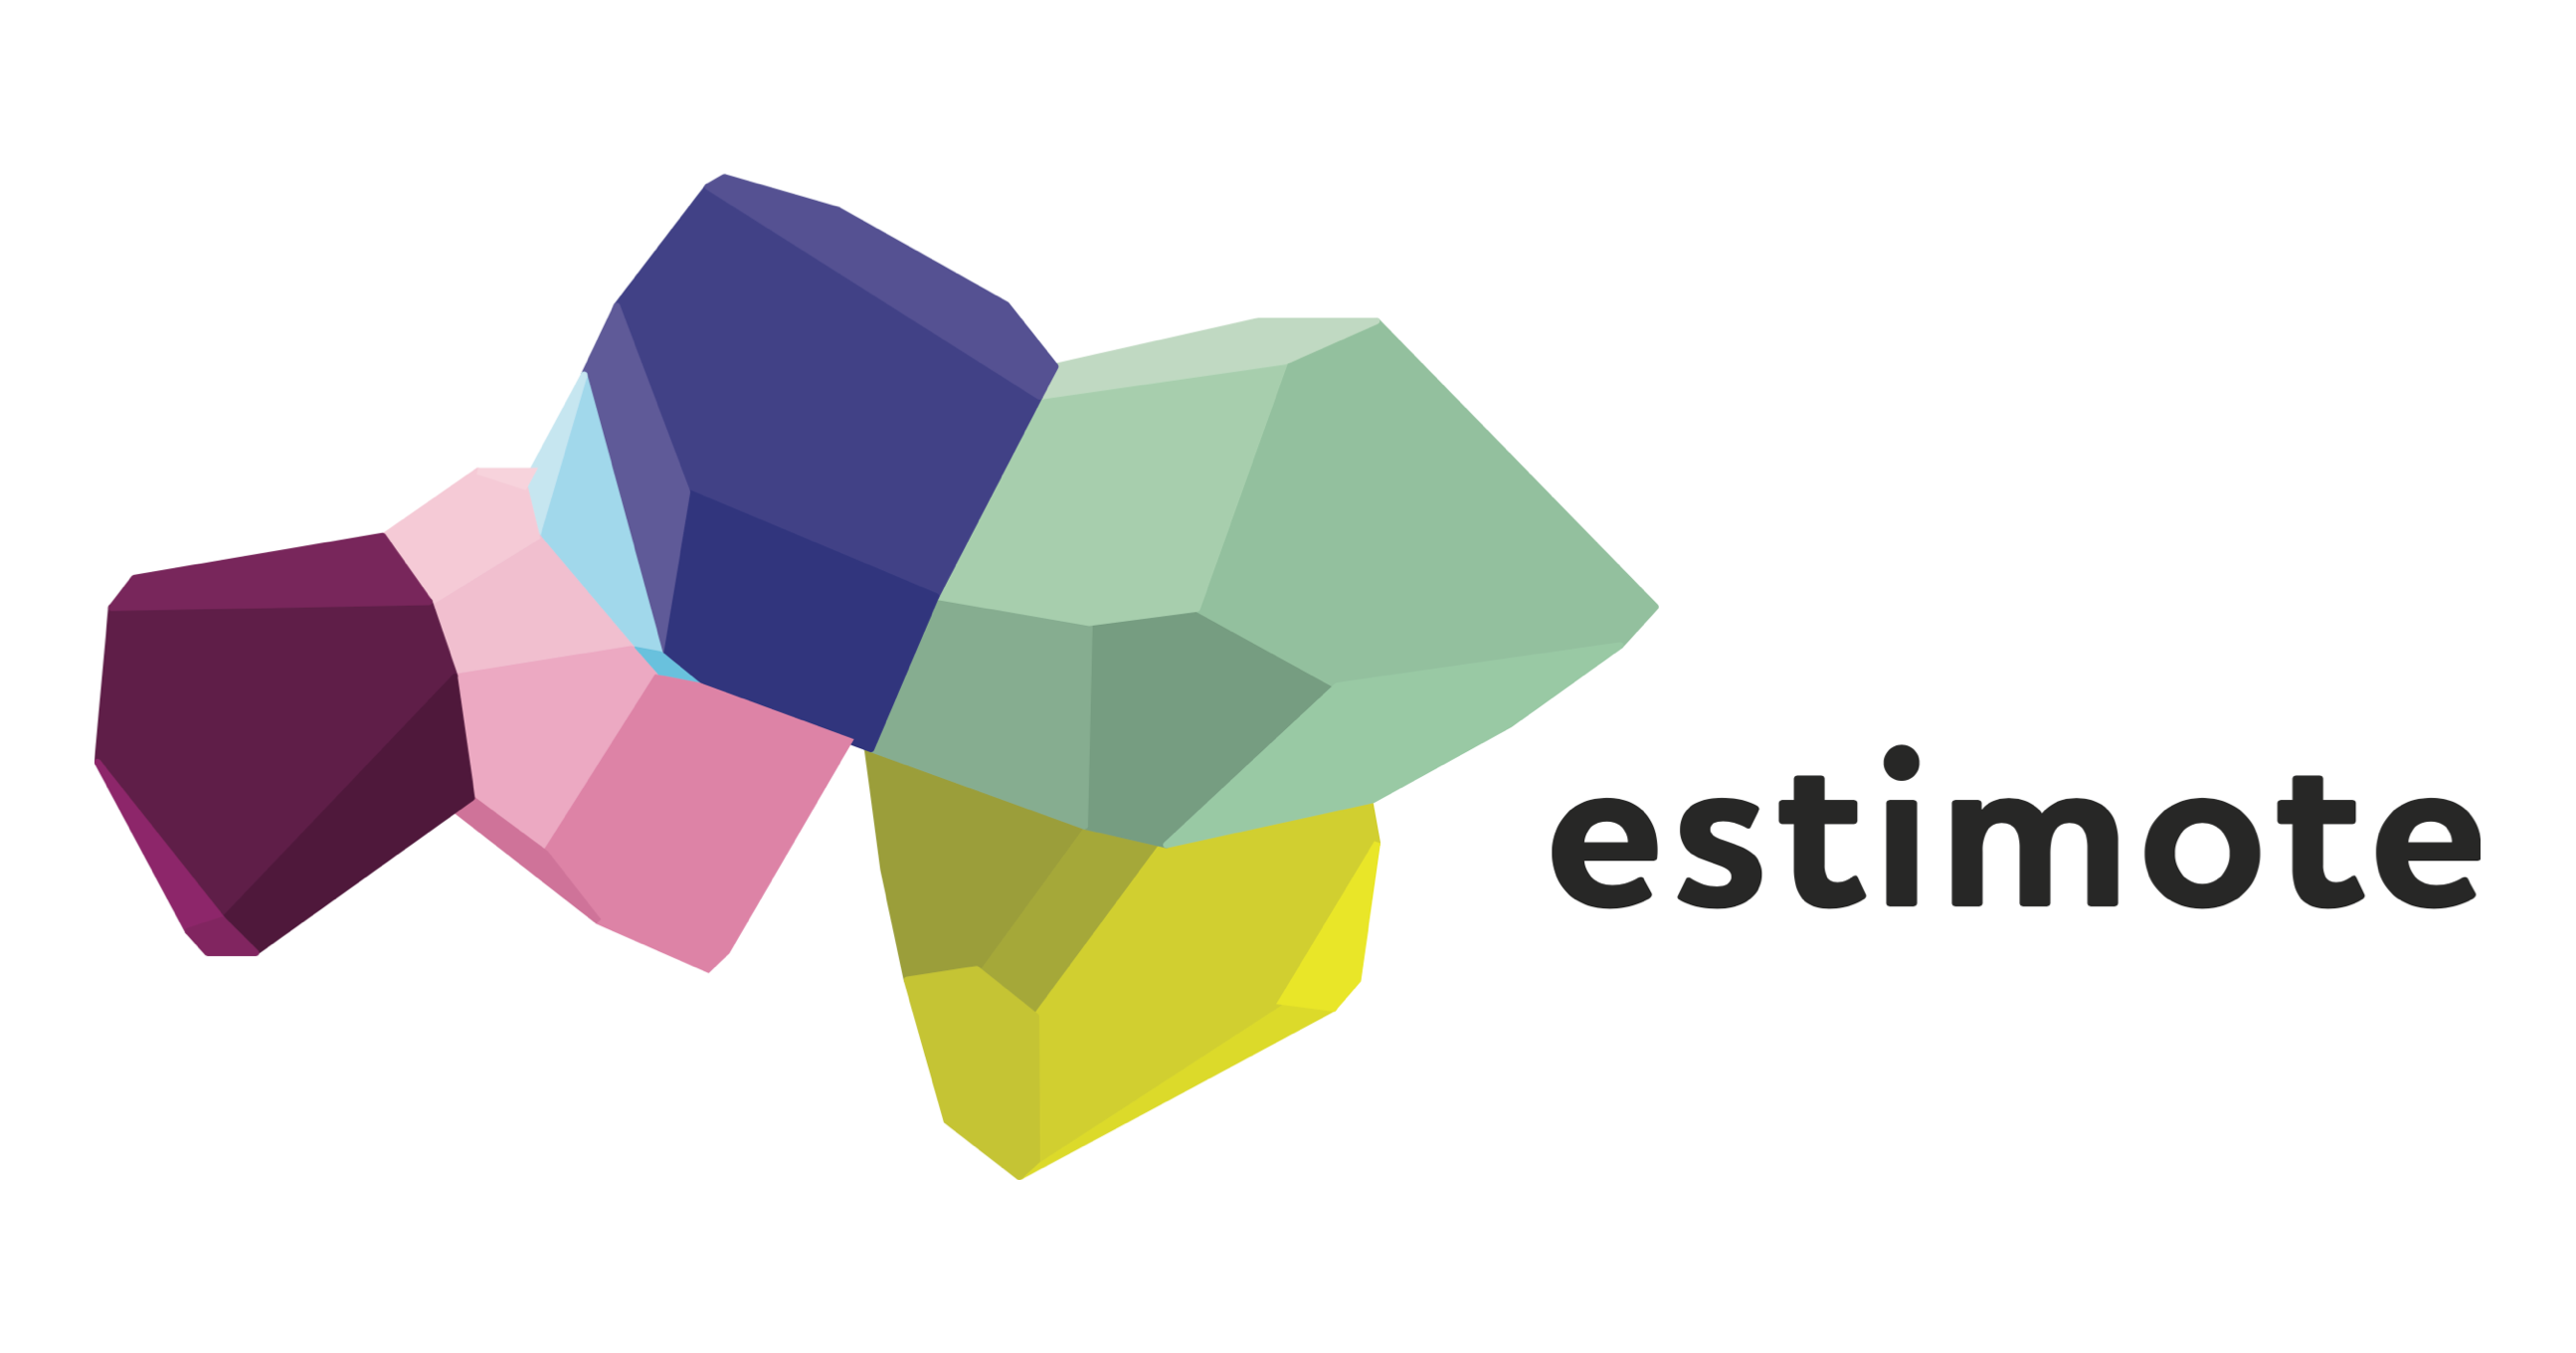 Automate your life with Estimote Beacons